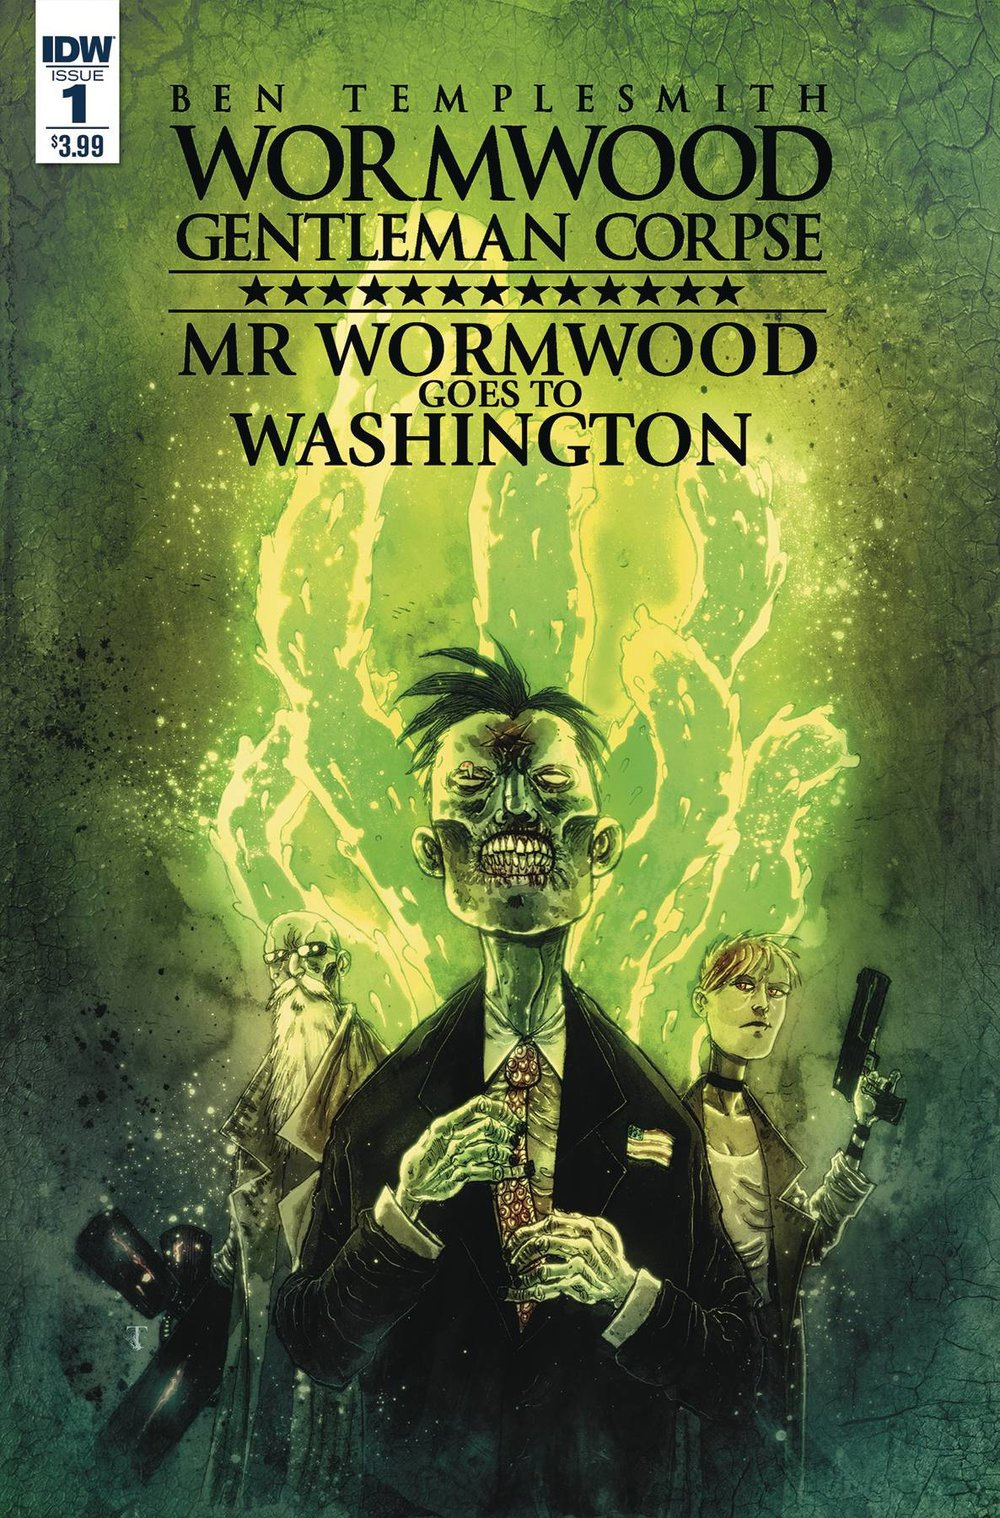 WORMWOOD GOES TO WASHINGTON 1 of 3 CVR A TEMPLESMITH.jpg